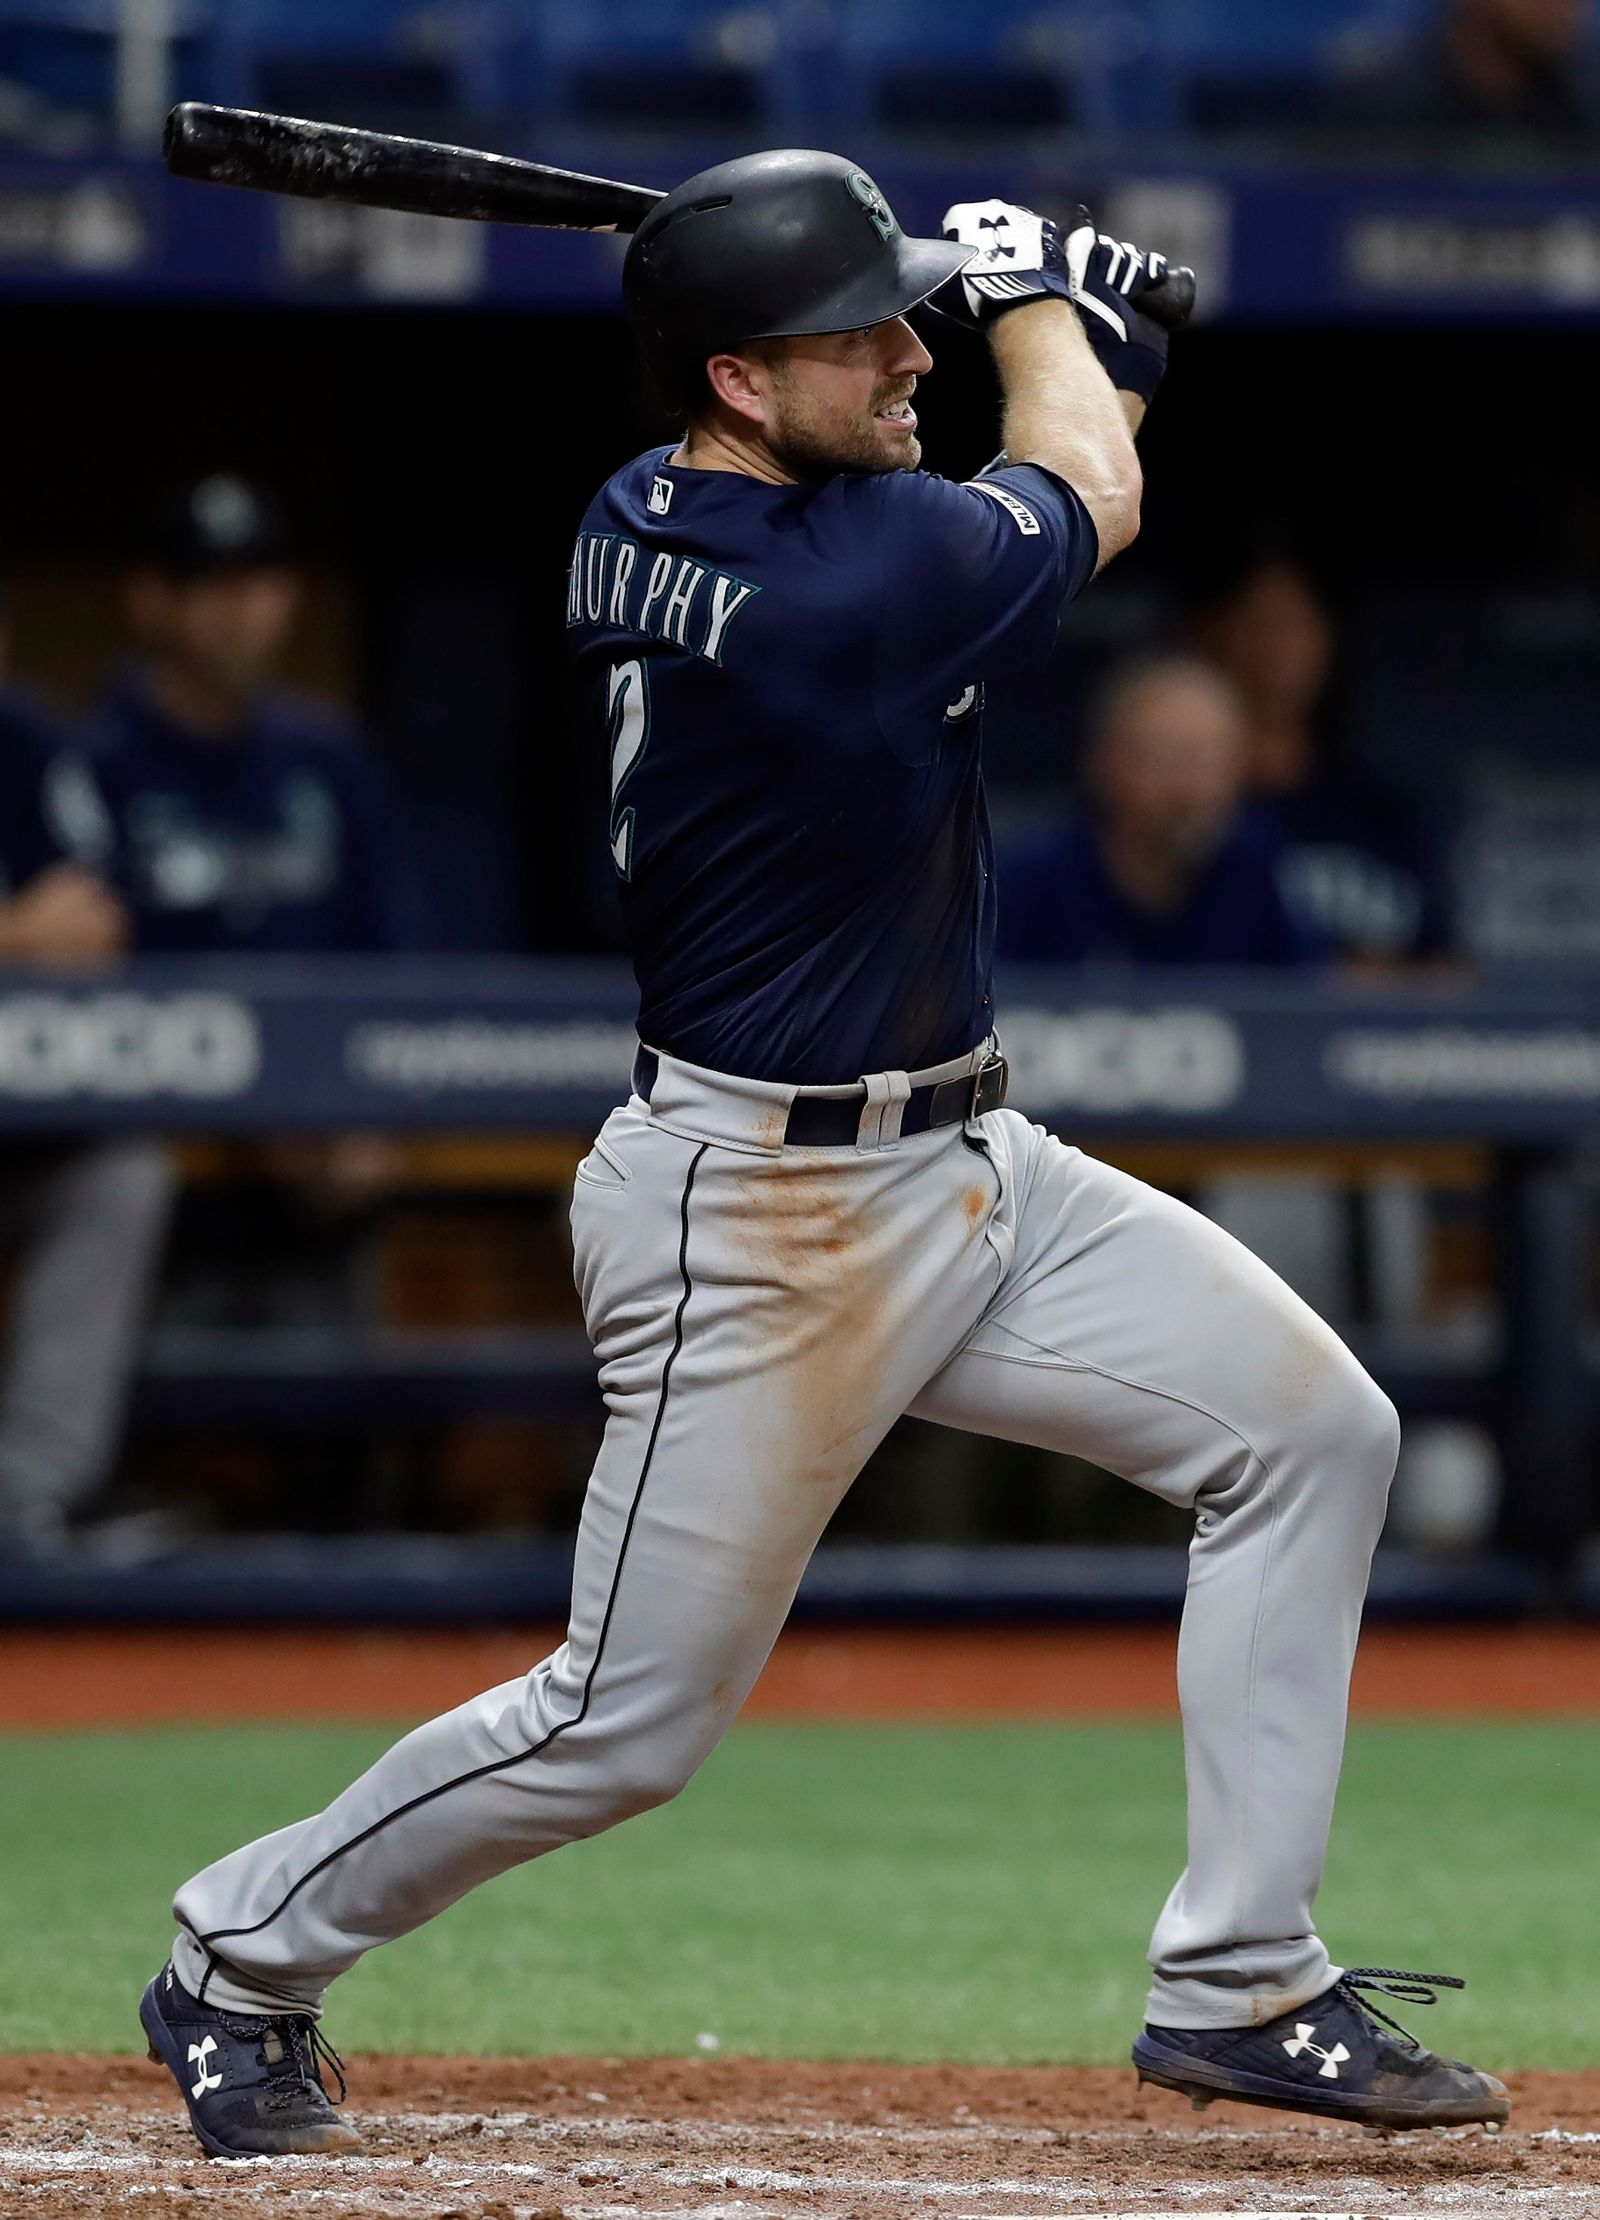 Seattle Mariners' Tom Murphy lines a single off Tampa Bay Rays relief pitcher Nick Anderson during the seventh inning of a baseball game Monday, Aug. 19, 2019, in St. Petersburg, Fla. (AP Photo/Chris O'Meara)